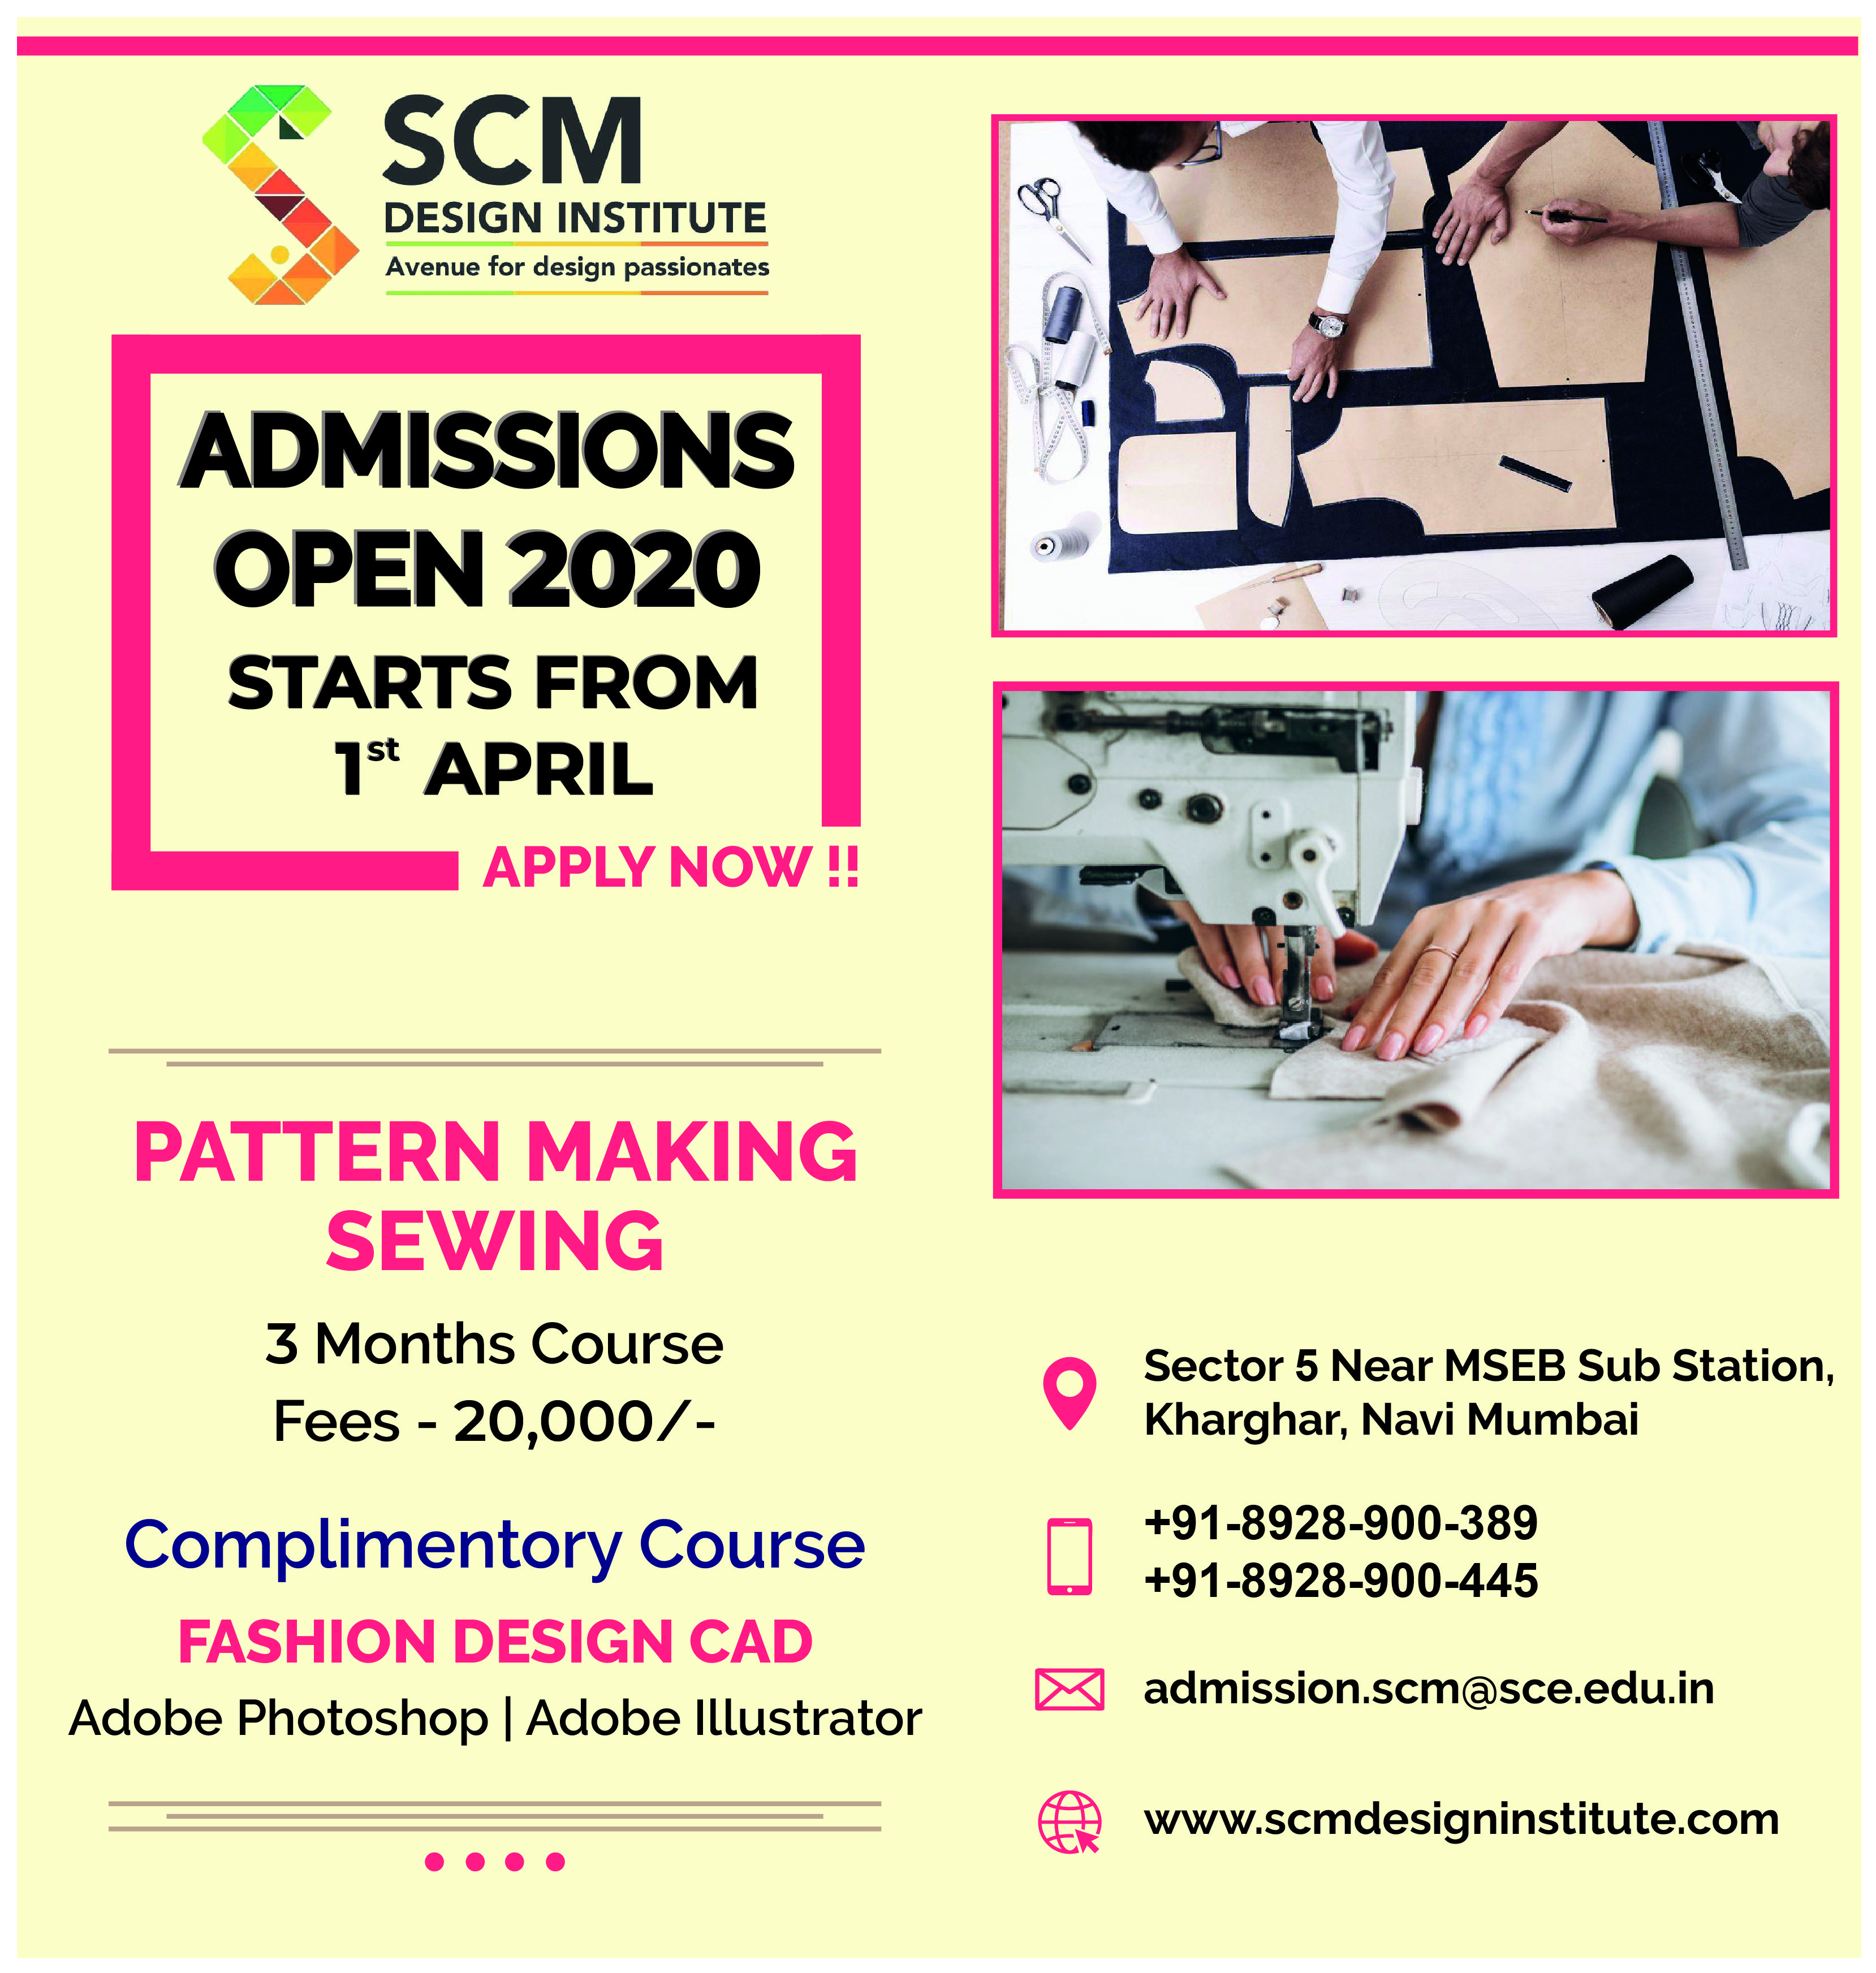 Scm Design Institute Is Coming Up With New Course On Pattern Making Sewing We Are Also Giving A Complimentary Course Of Fa In 2020 Fashion Design Design Photoshop